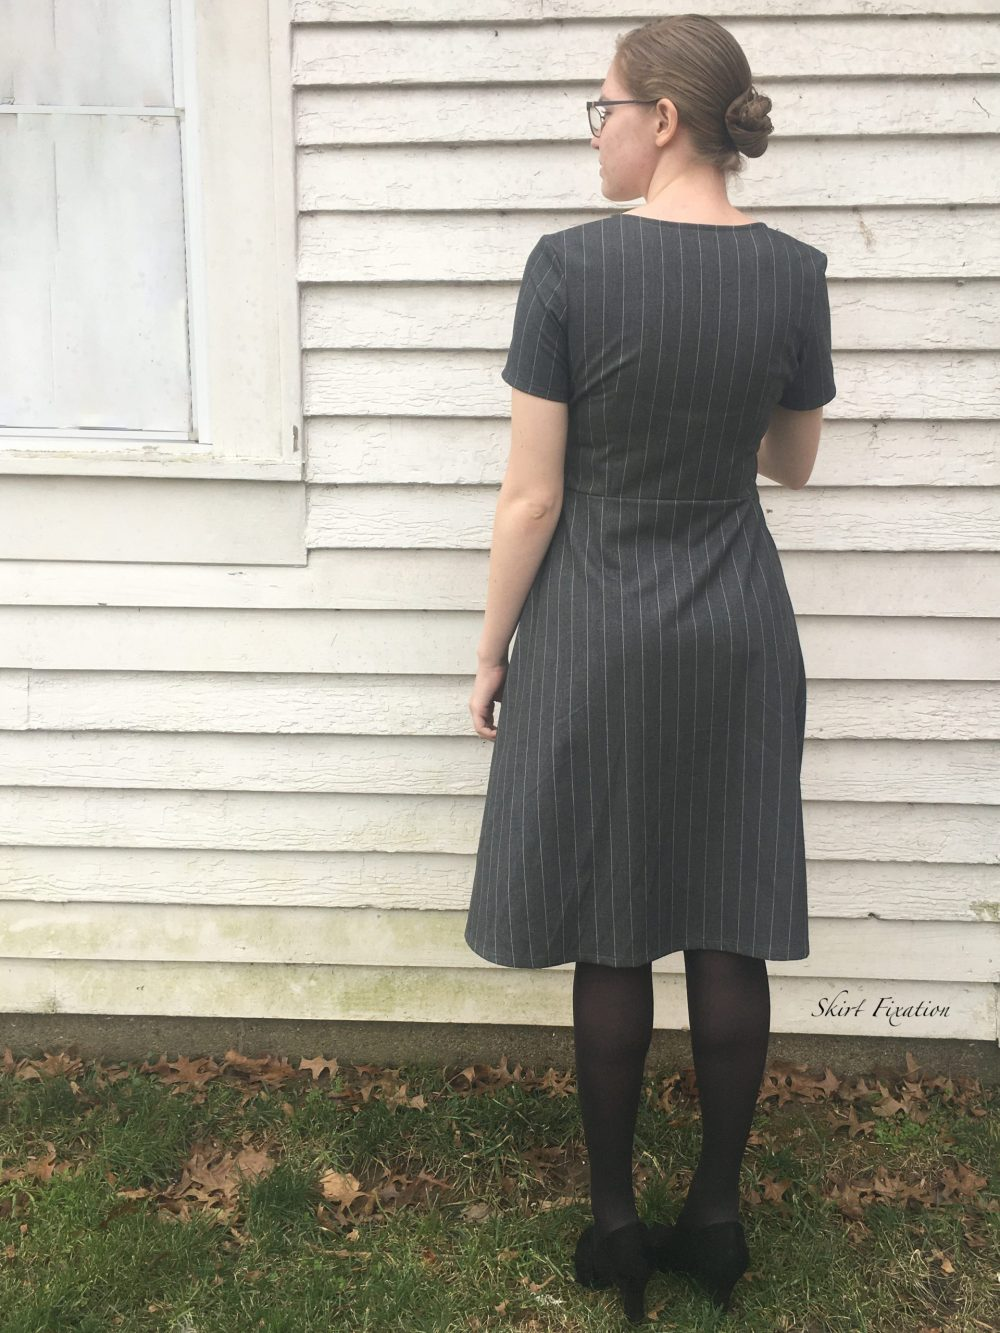 Lyric Dress review by Skirt Fixation